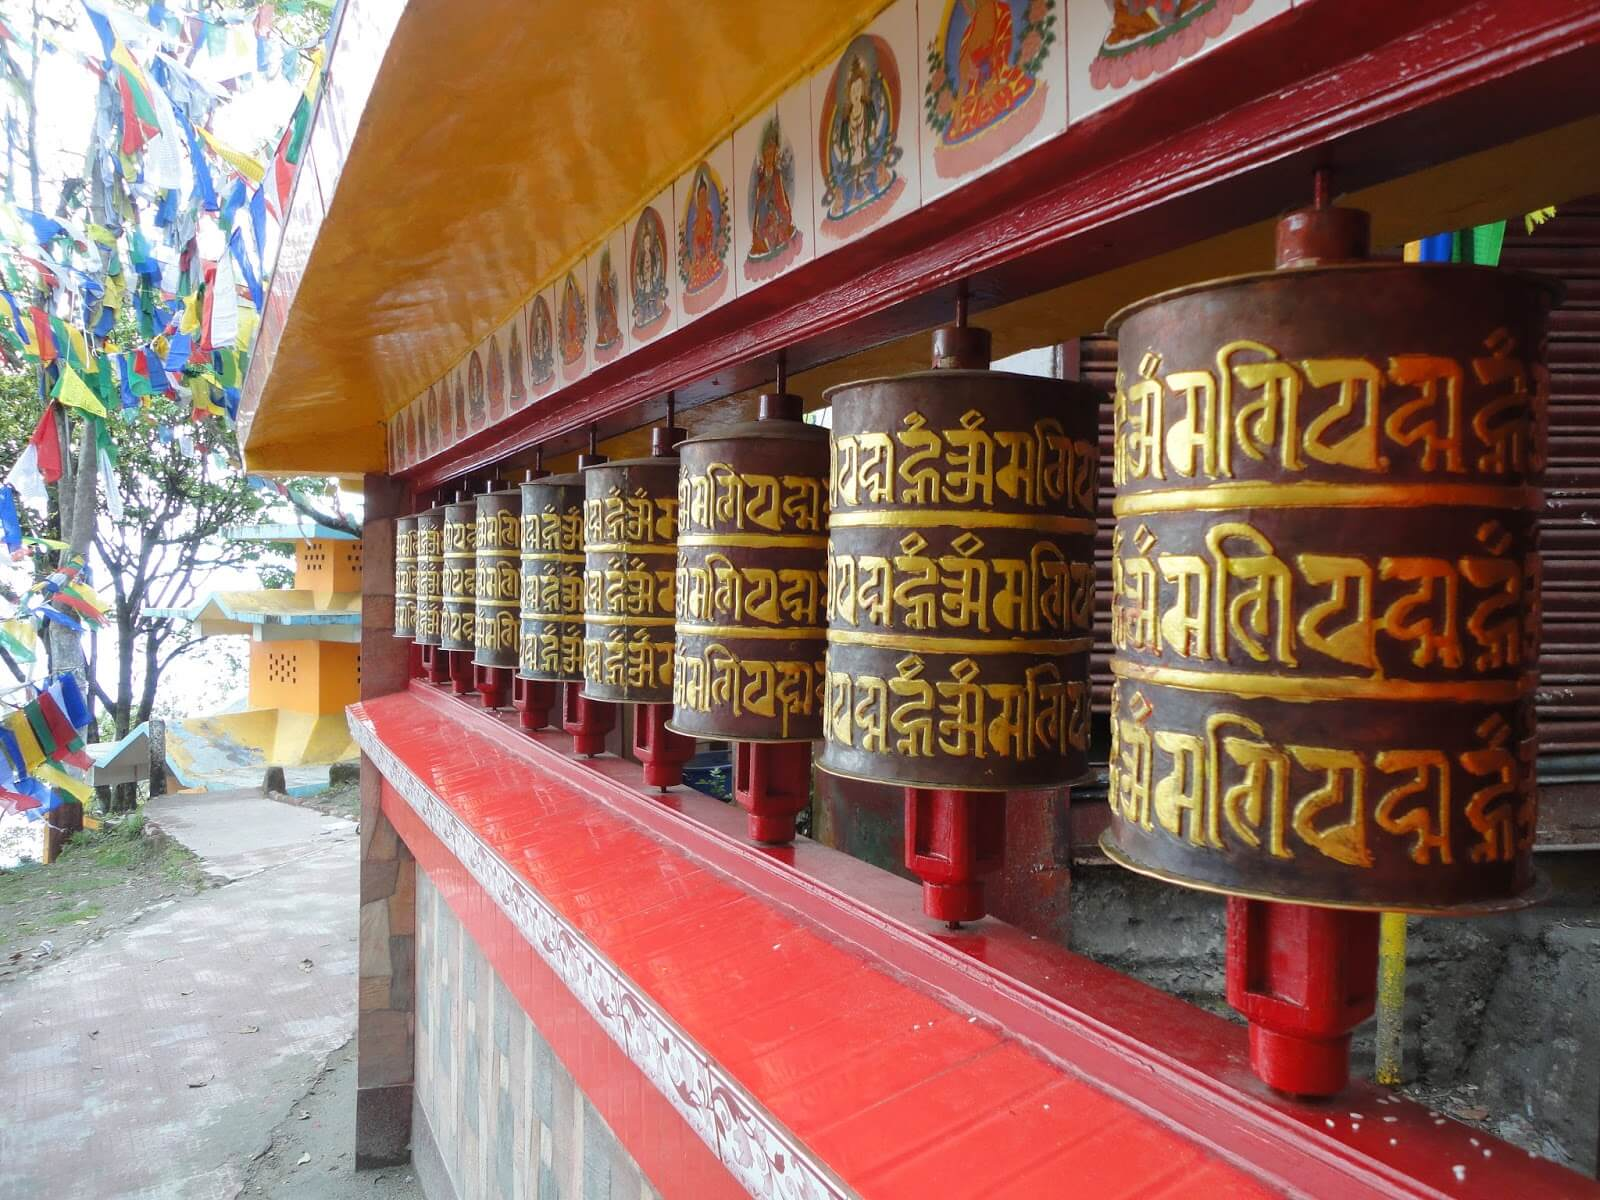 sikkim-darjeeling-travelco-tour-packages-2